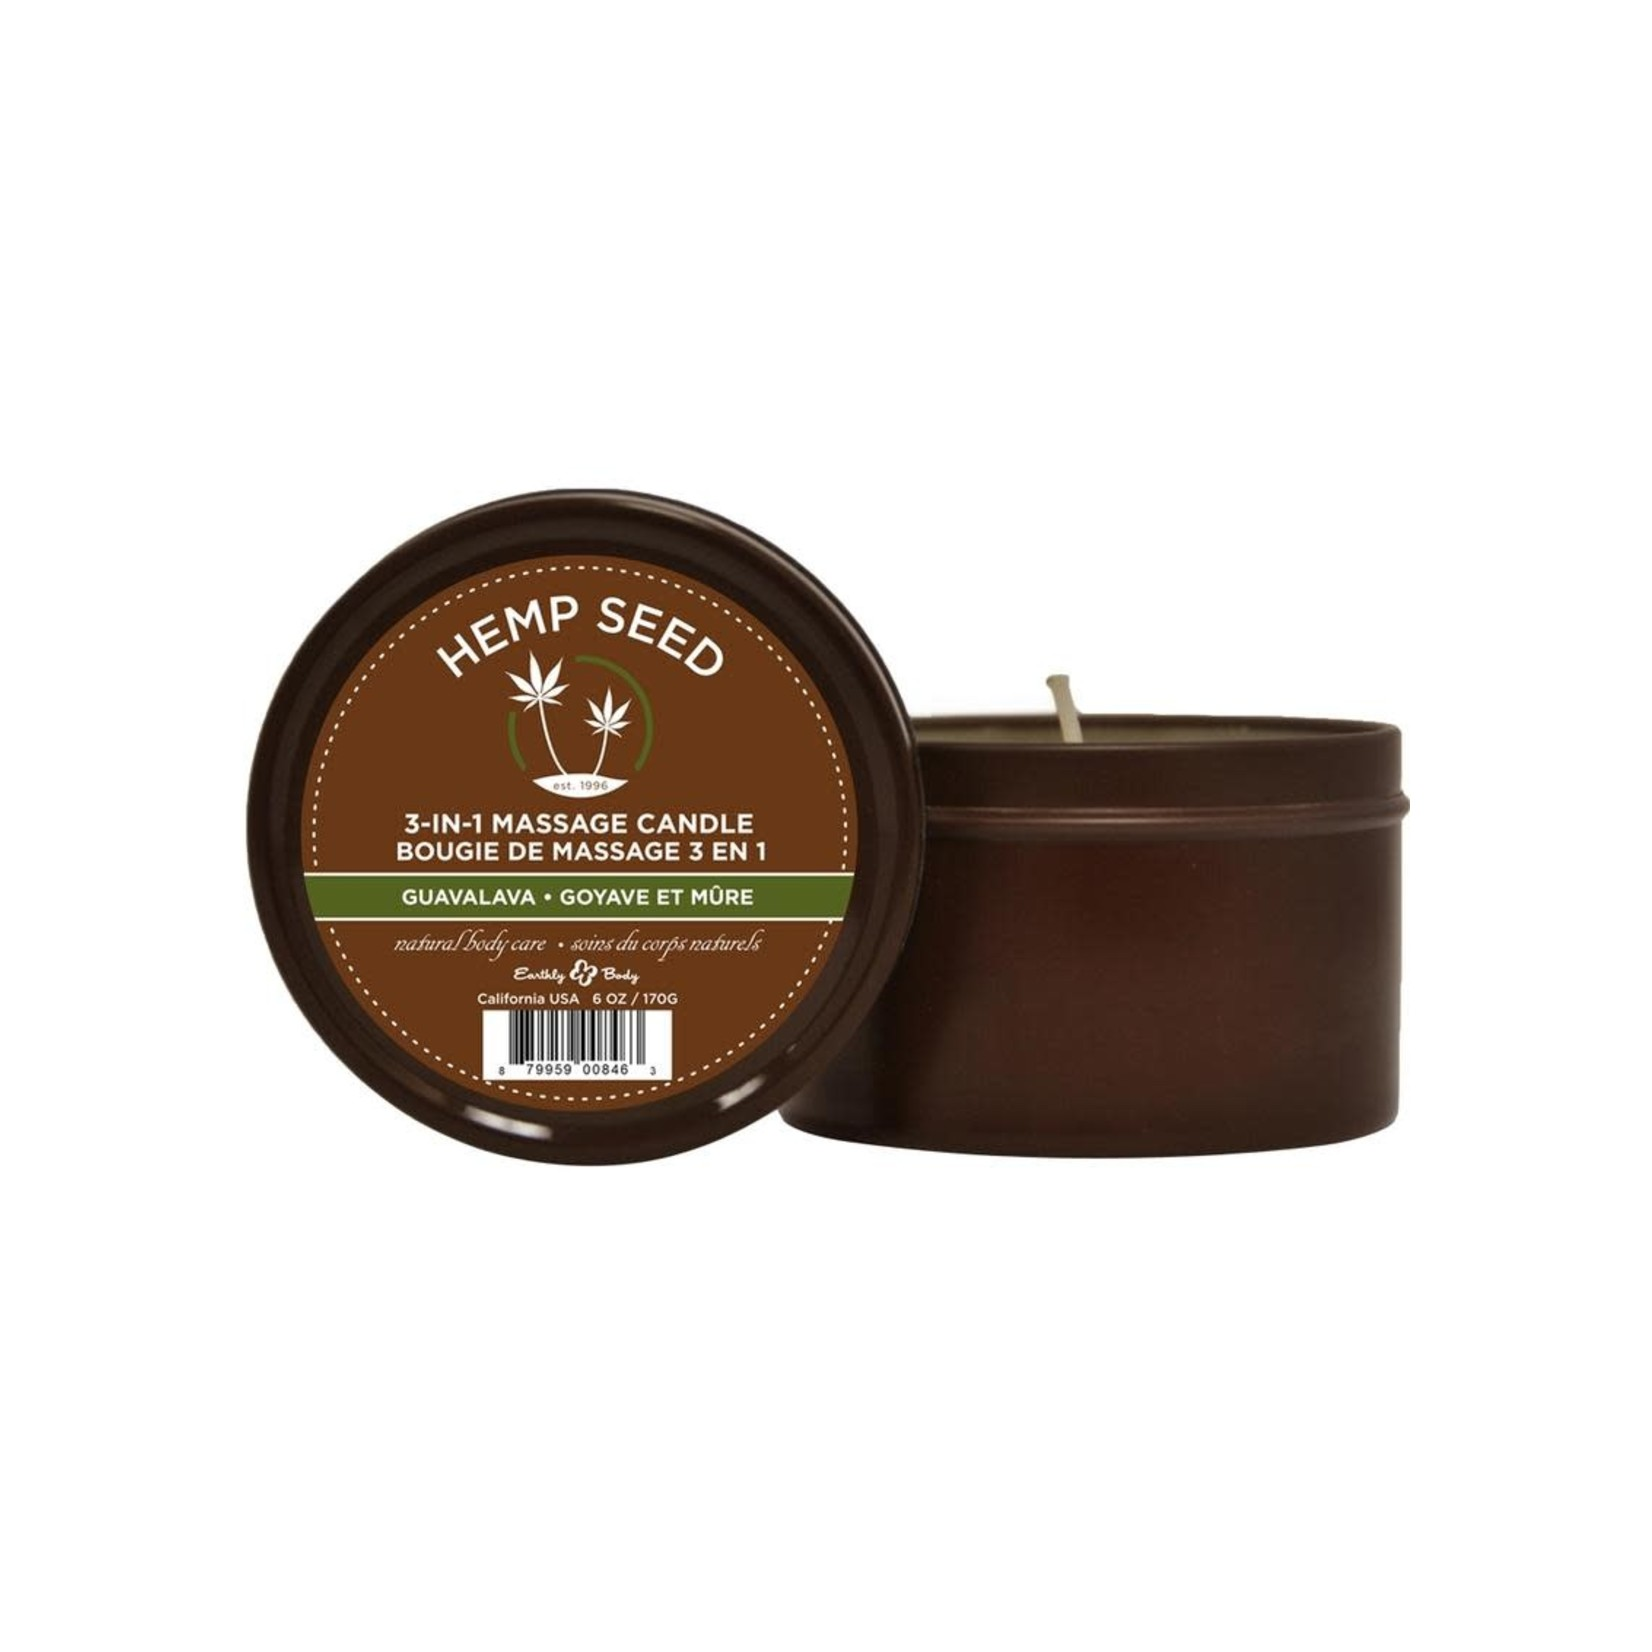 Earthly Body 3-in-1 Massage Candle-Guavalava 6oz